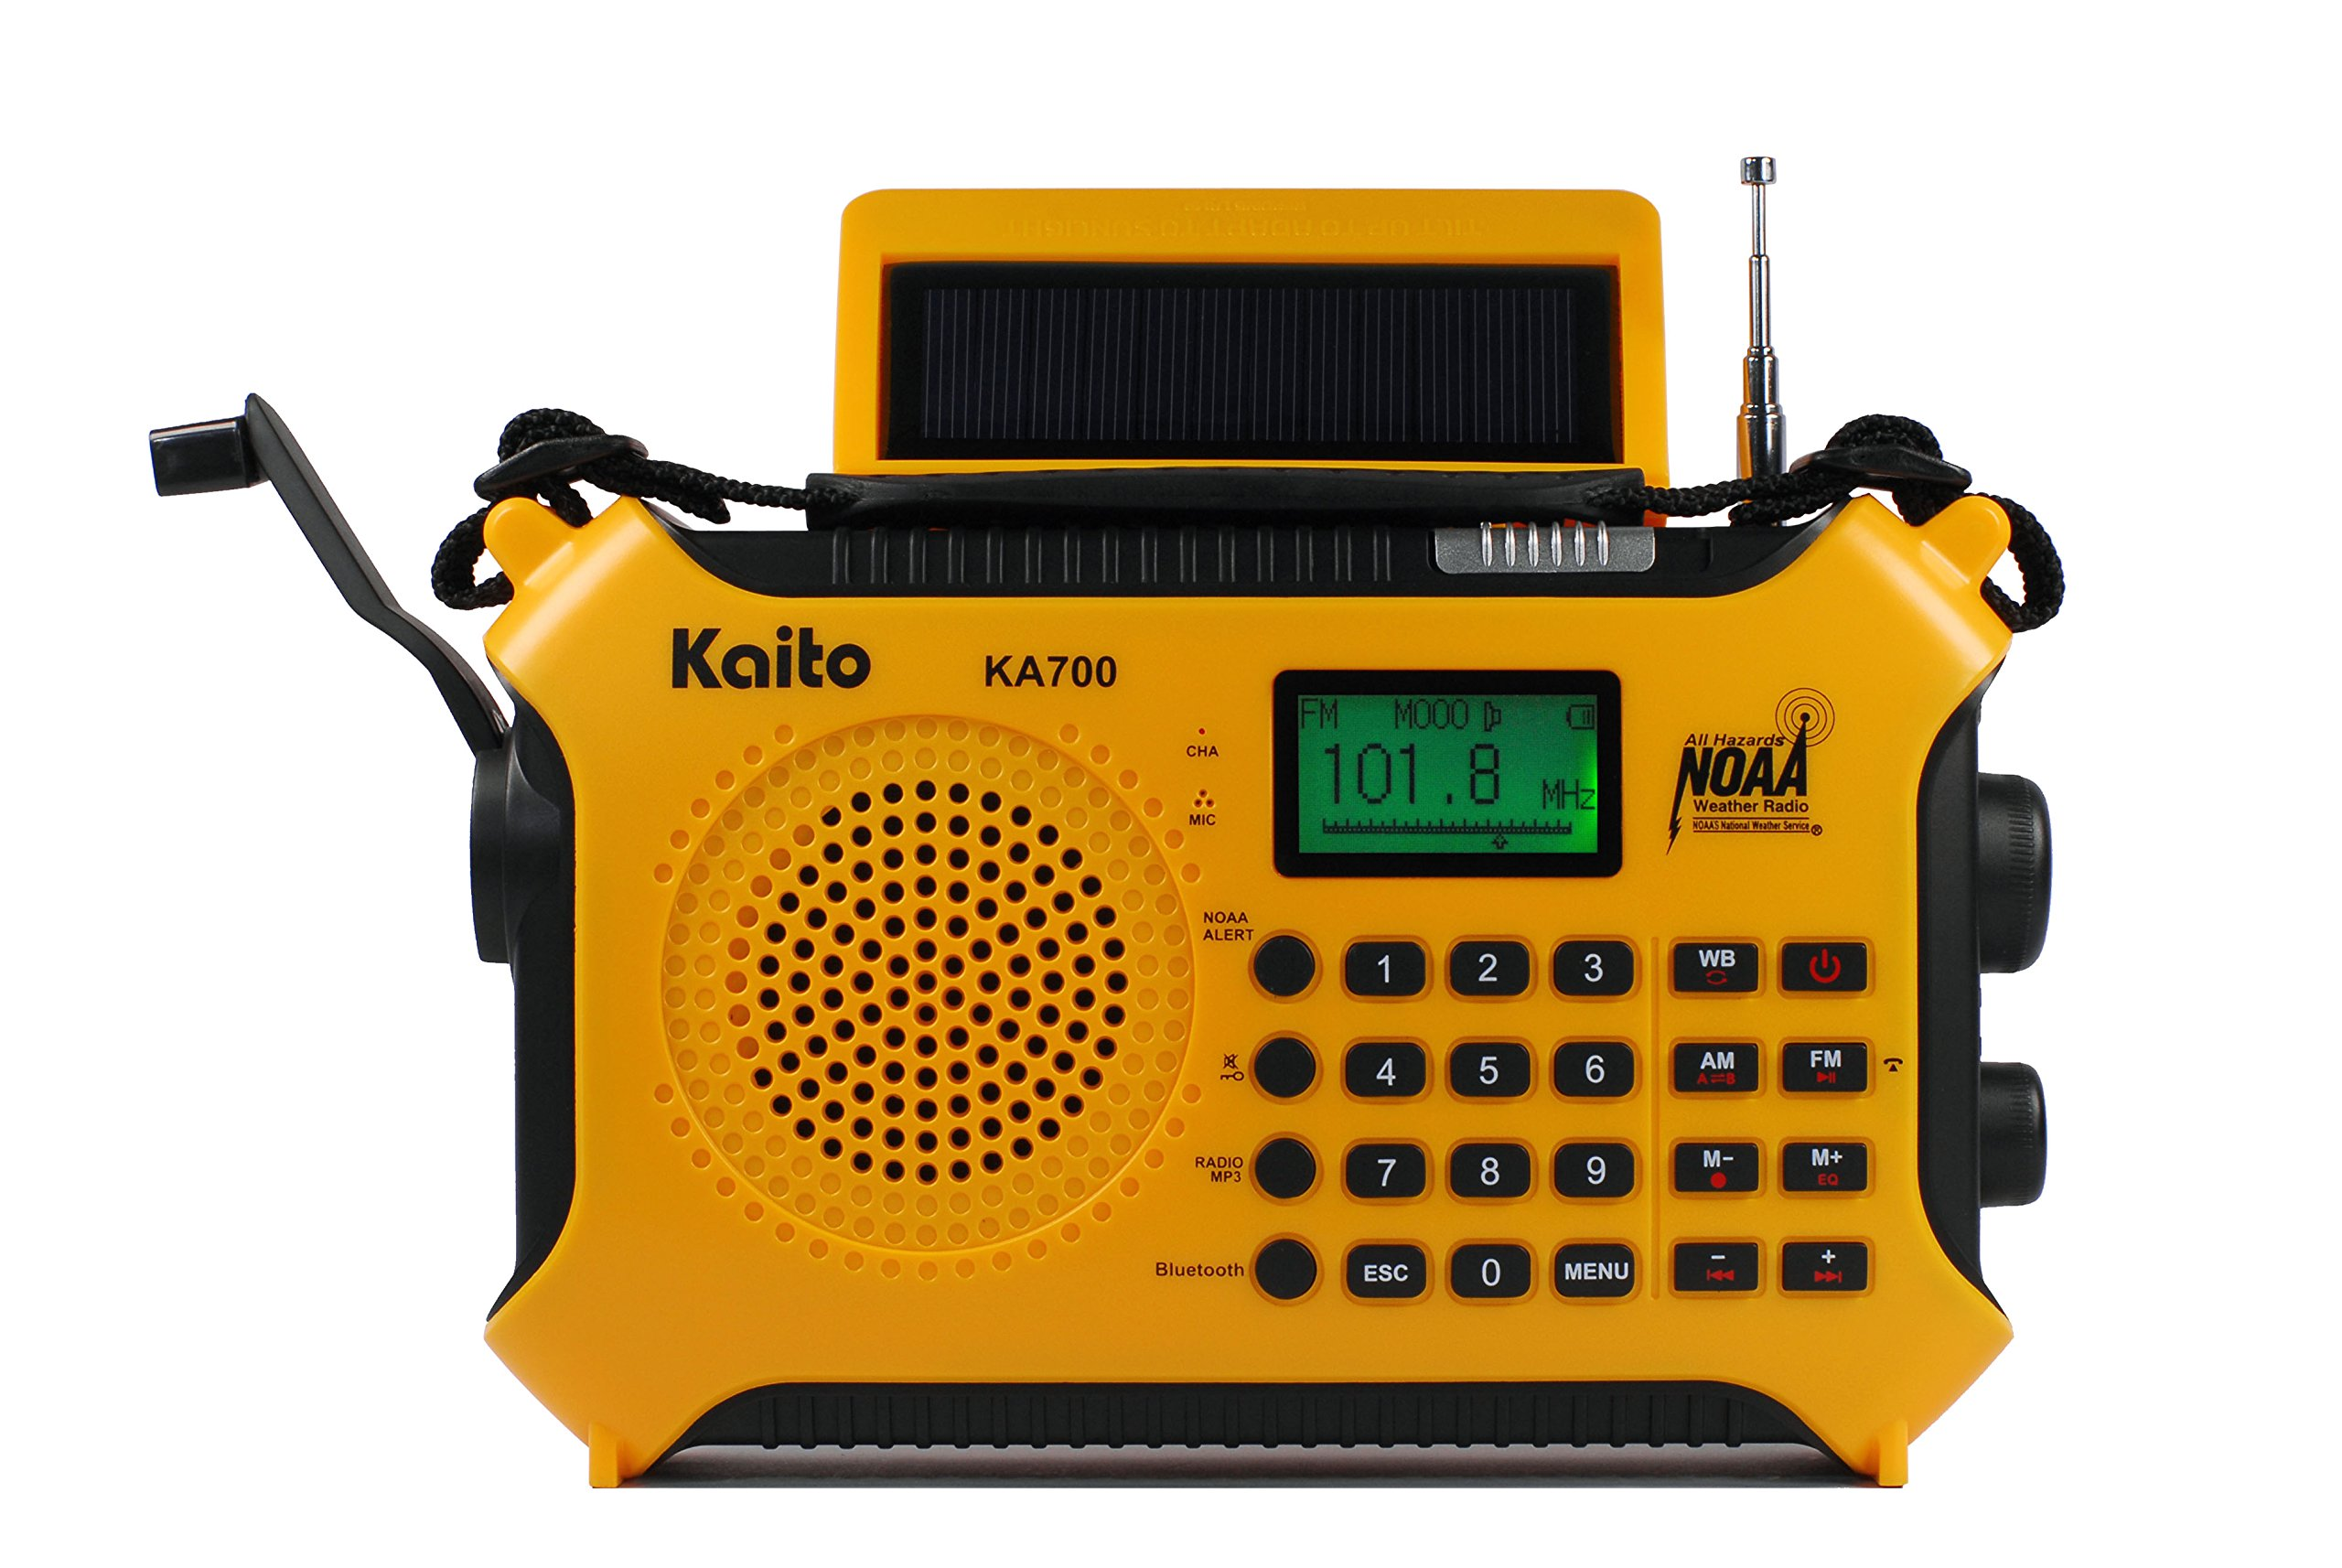 Kaito KA700 Bluetooth Emergency Hand Crank Dynamo & Solar Powered AM FM Weather Band Radio With Recorder and MP3 Player - Rugged Design for Hiking, Camping, Construction Sites, Etc.(Yellow) by Kaito